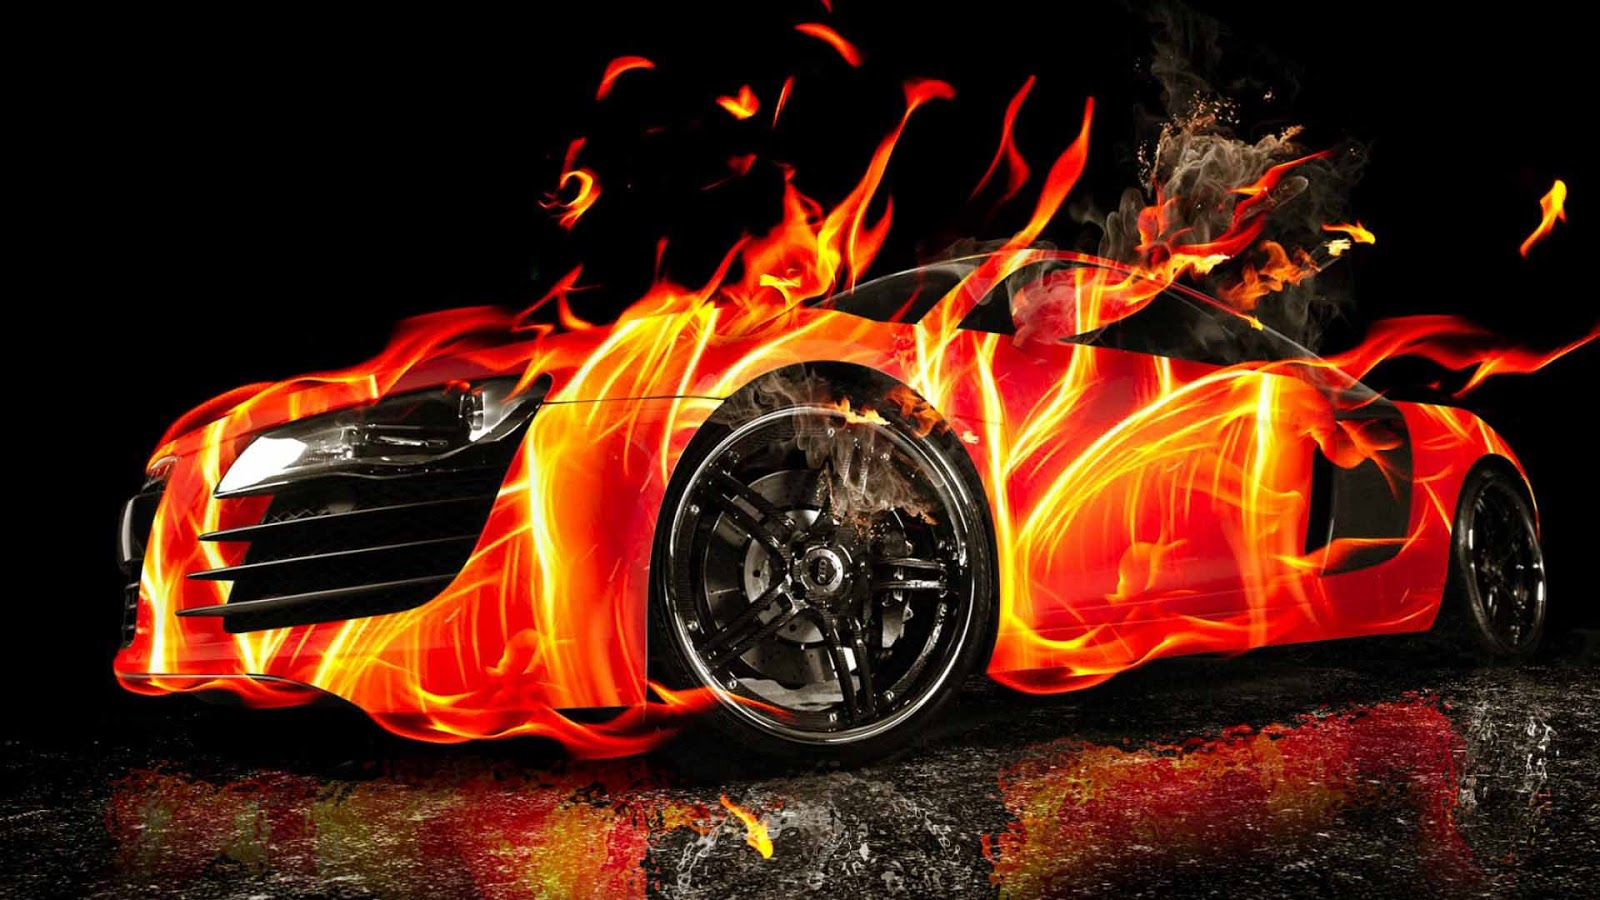 3d hd car fire wallpaper: desktop hd wallpaper - download free image